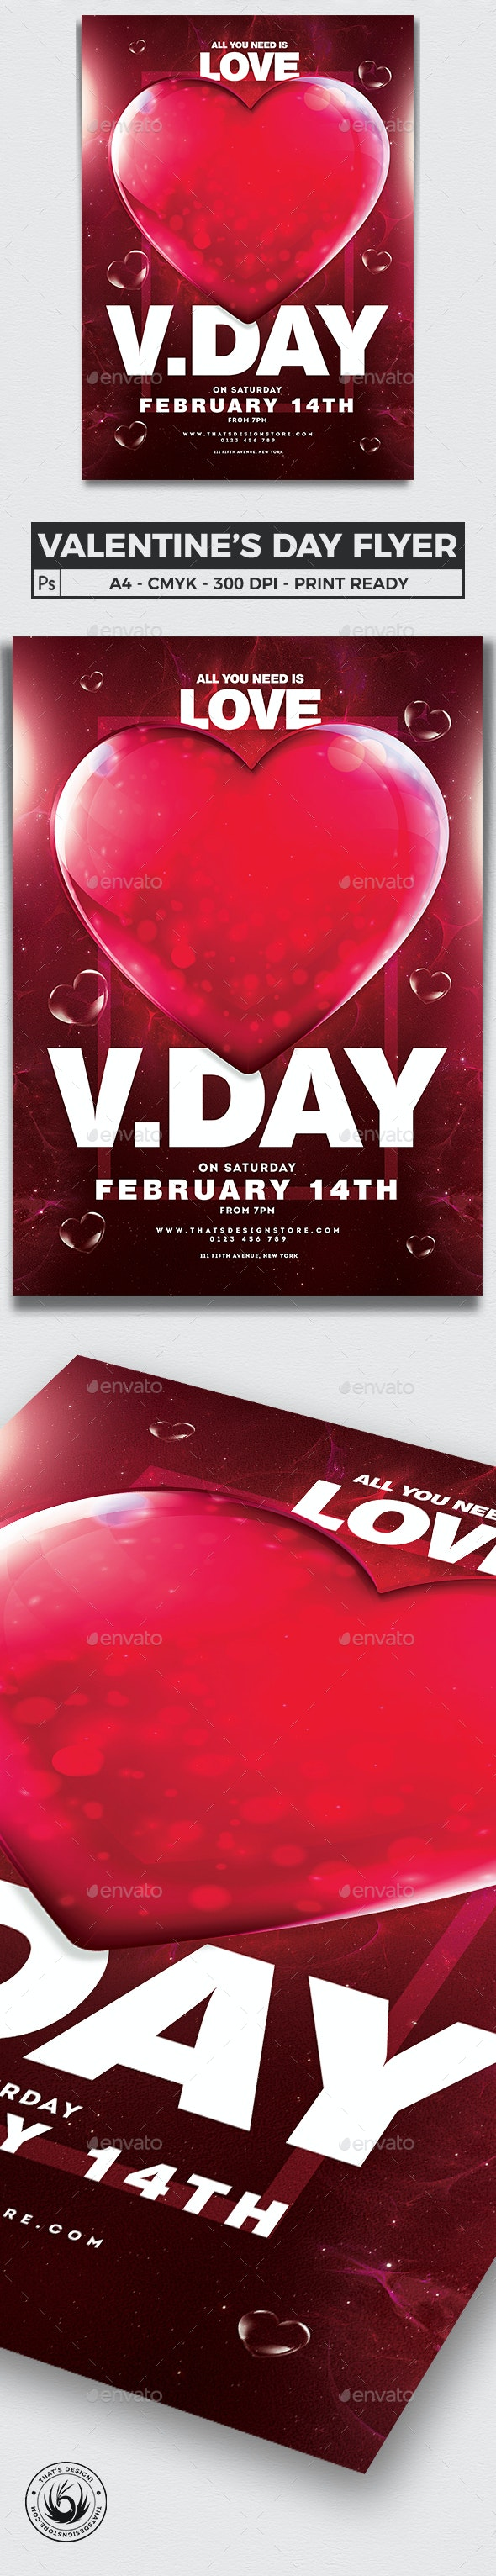 Valentines Day Flyer Template V21 - Clubs & Parties Events